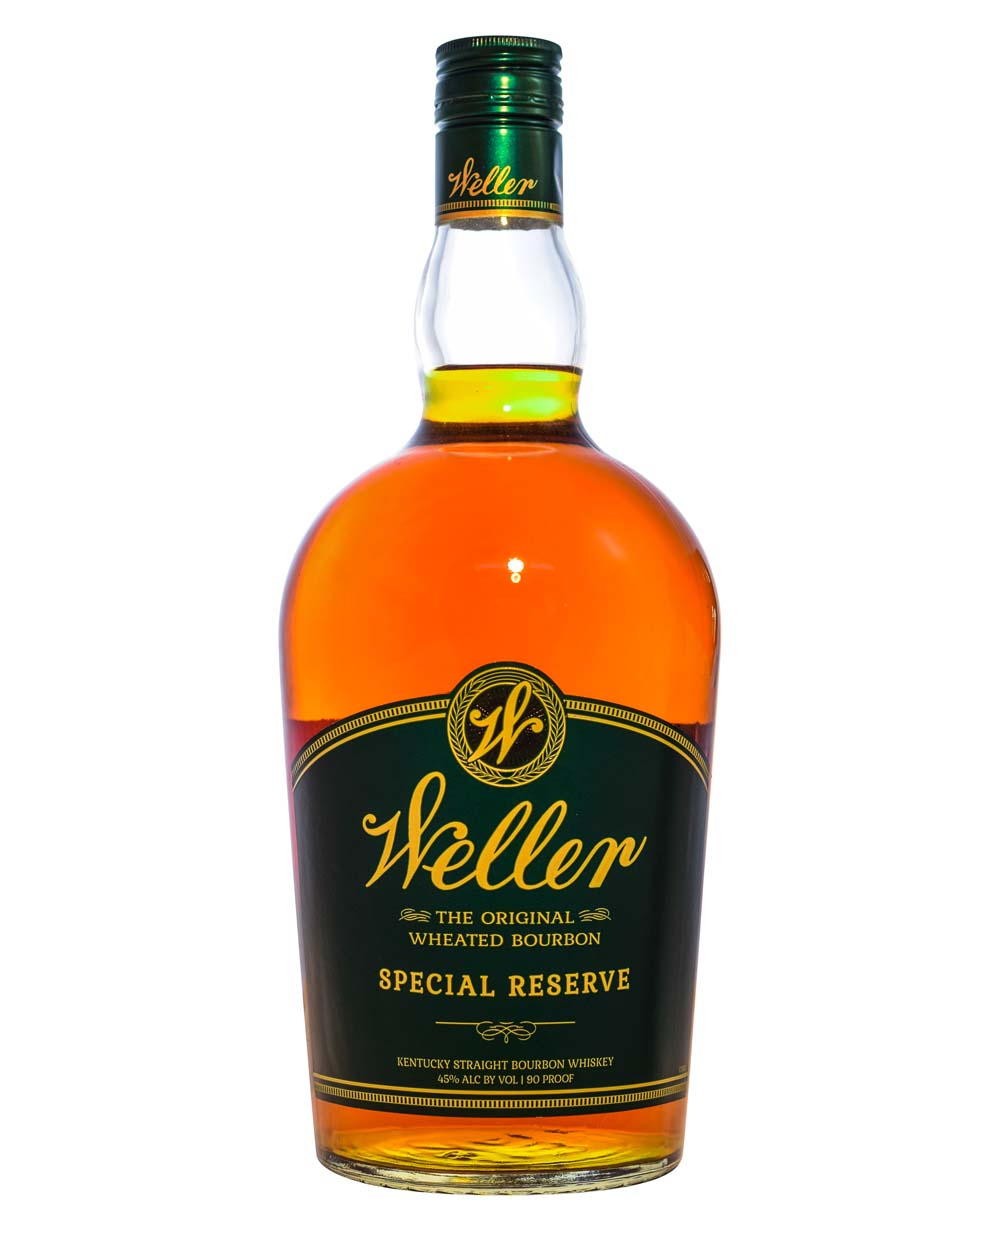 Weller Special Reserve 1.75 New